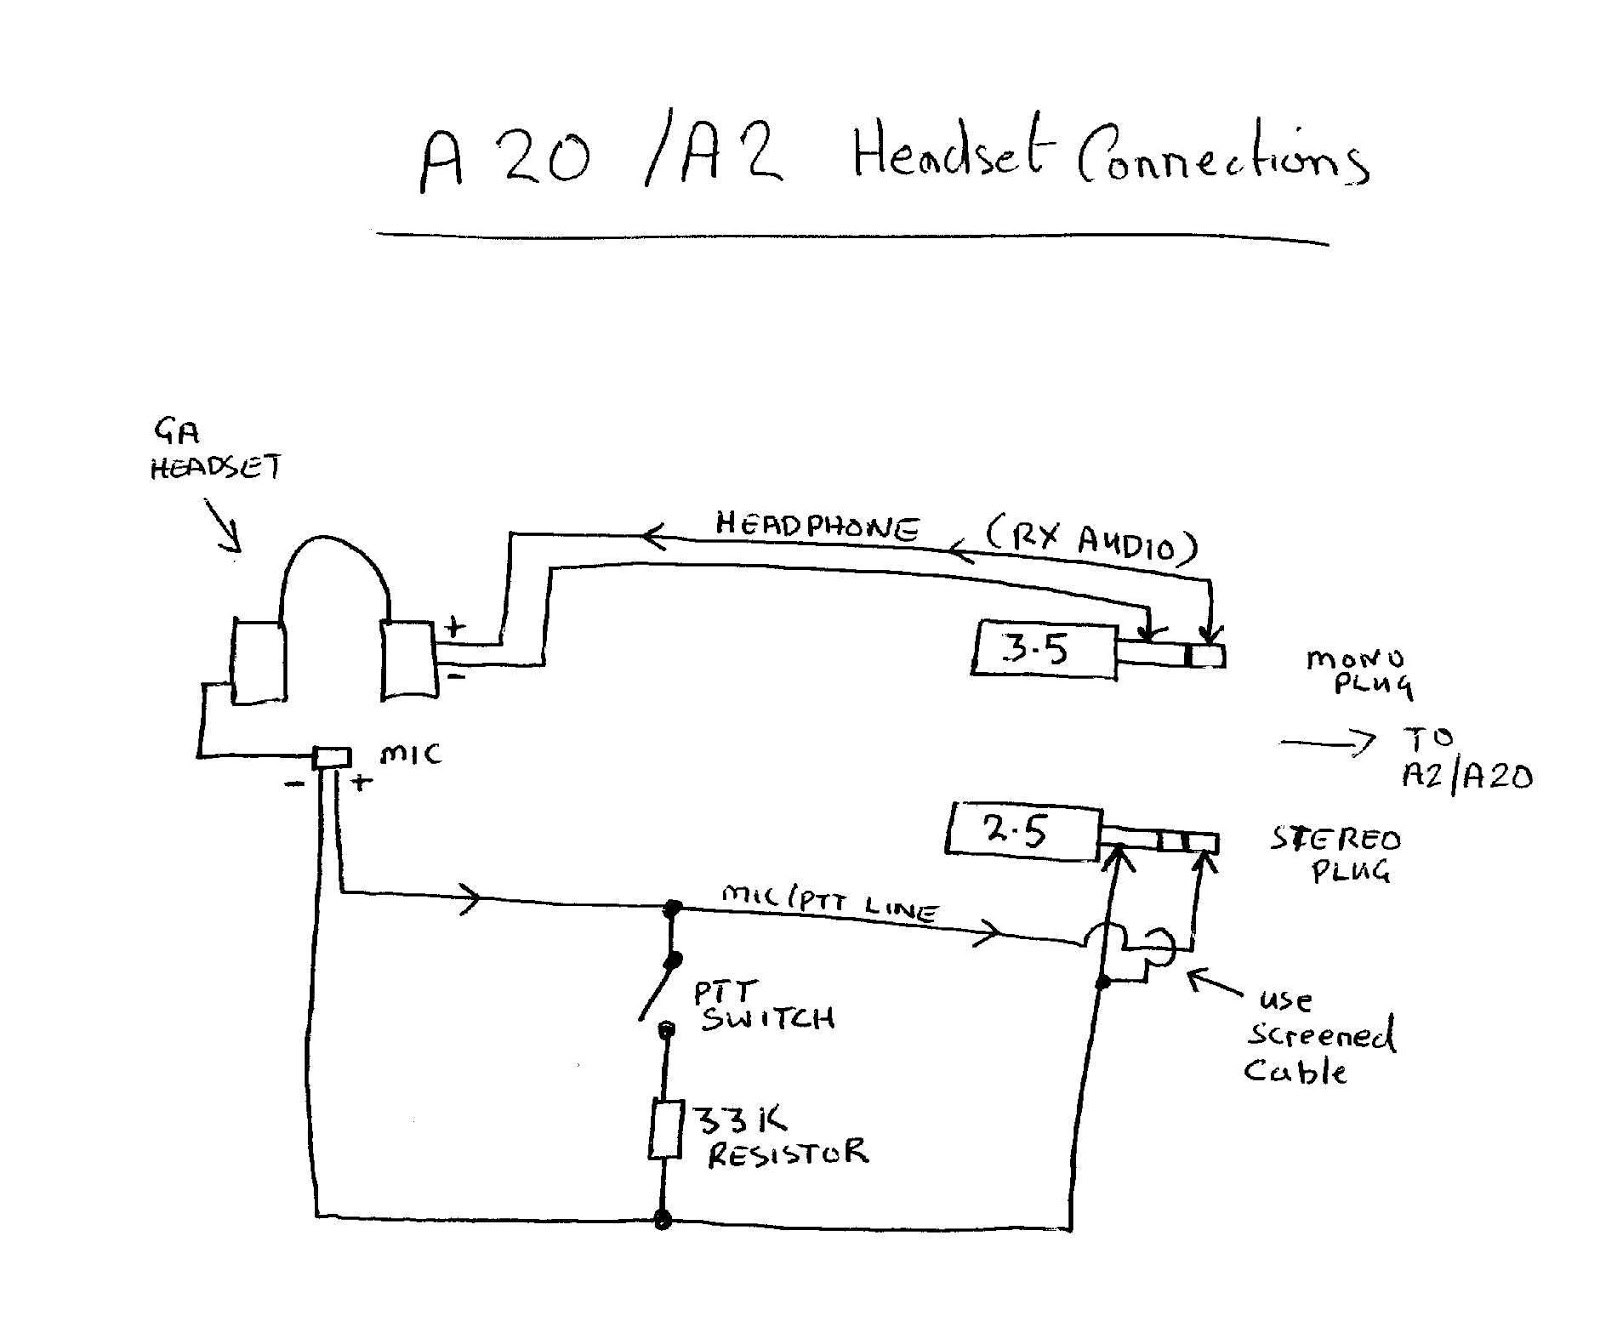 Aviation headset jack wiring diagram somurich aviation headset jack wiring diagram aircraft microphone jack wiring diagramrhsvlc asfbconference2016 Choice Image